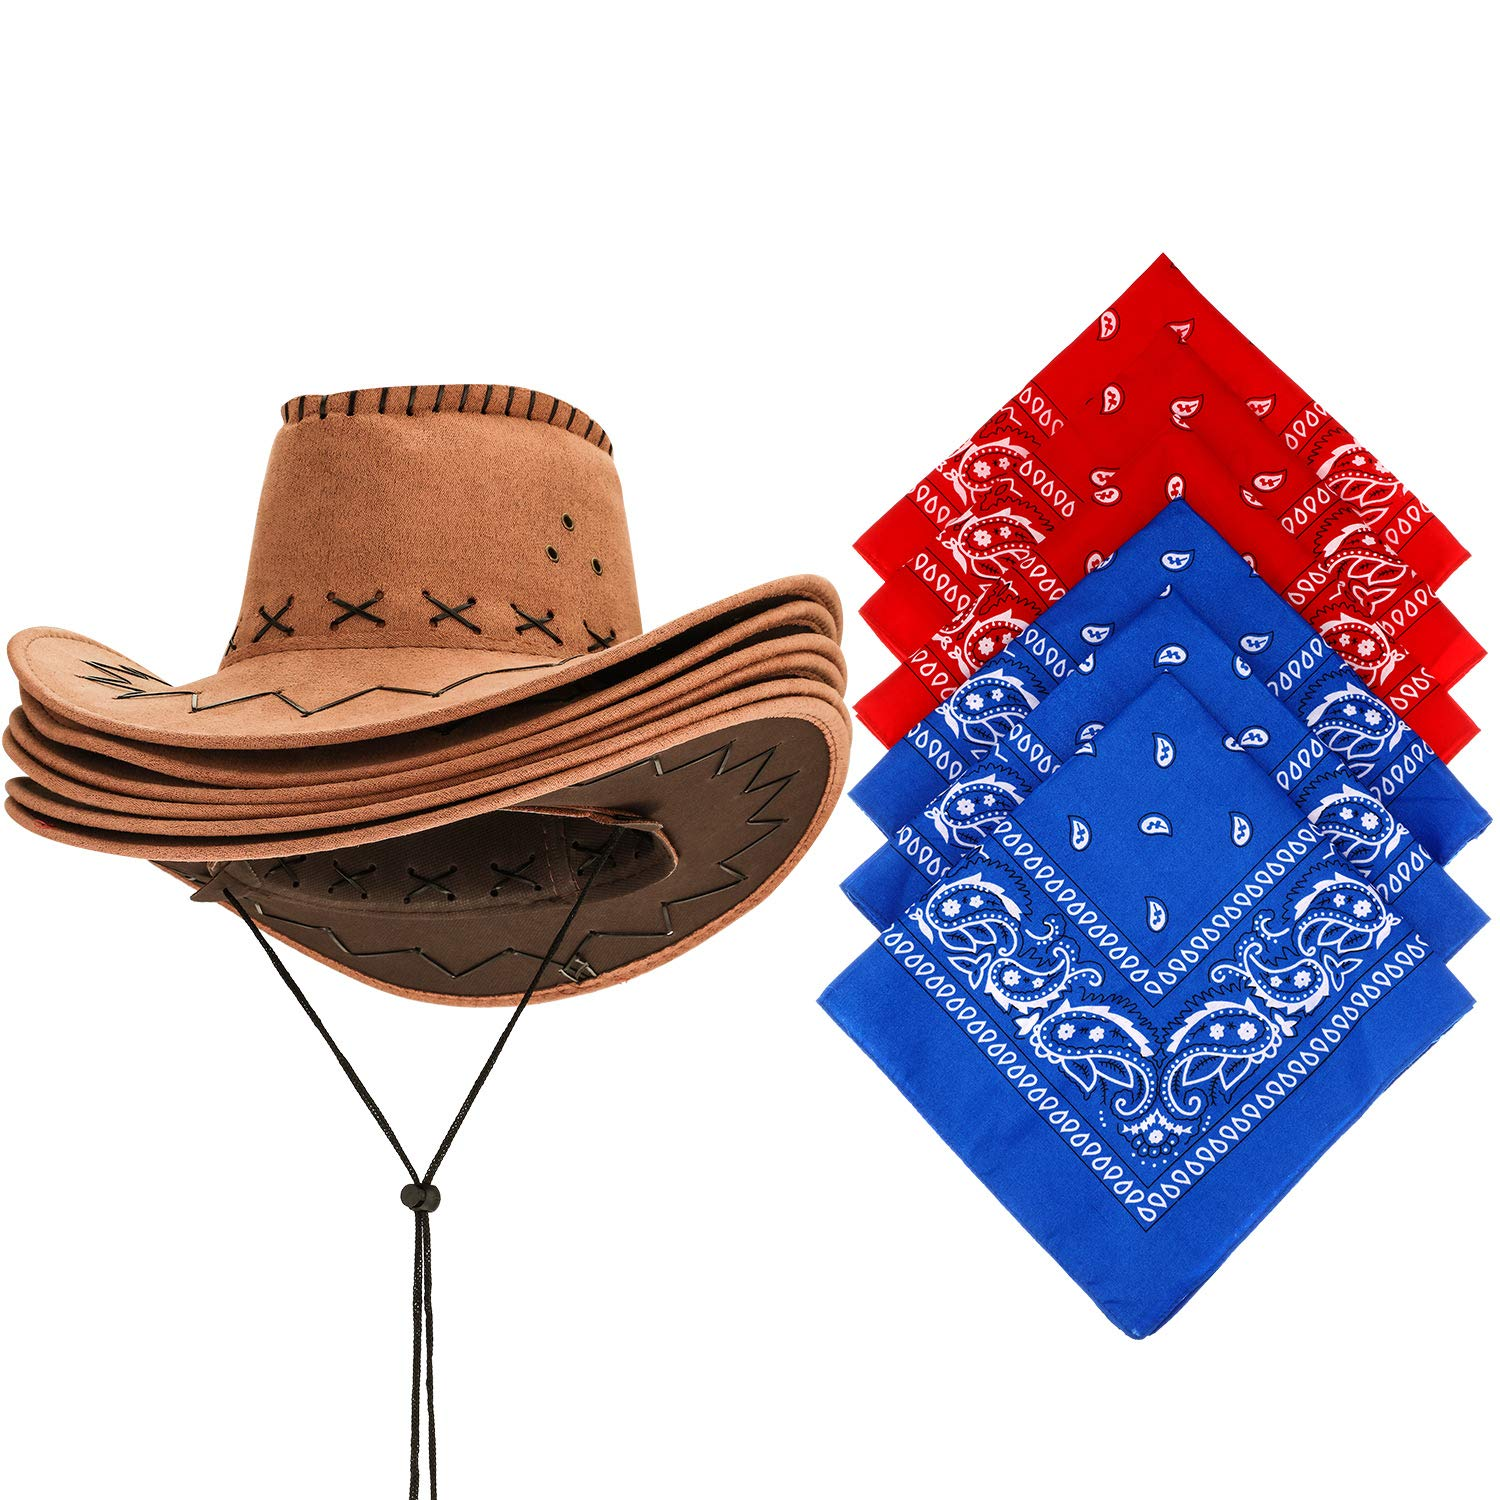 6 Packs Western Cowboy Hat with Bandanna, Fancy Dress Party Favorite by SATINIOR